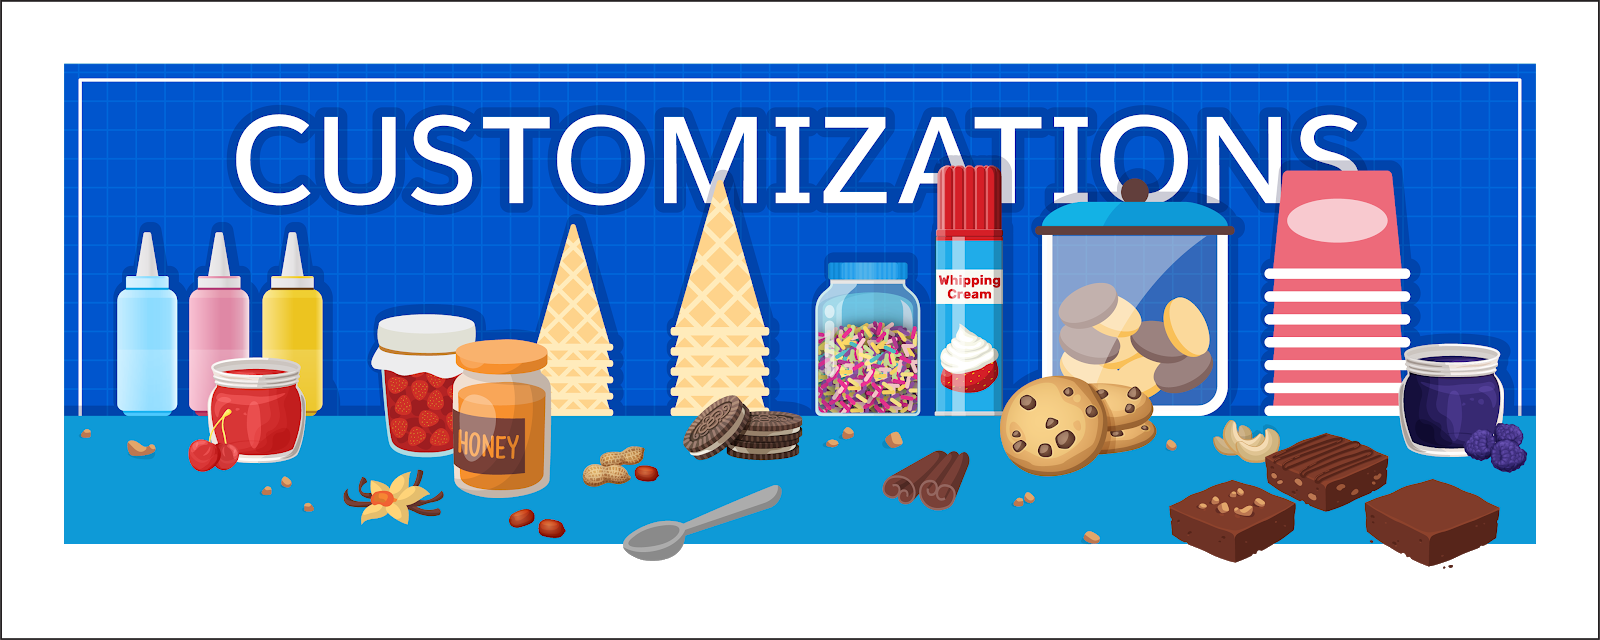 The sundae toppings are the additional customizations your particular organization needs.